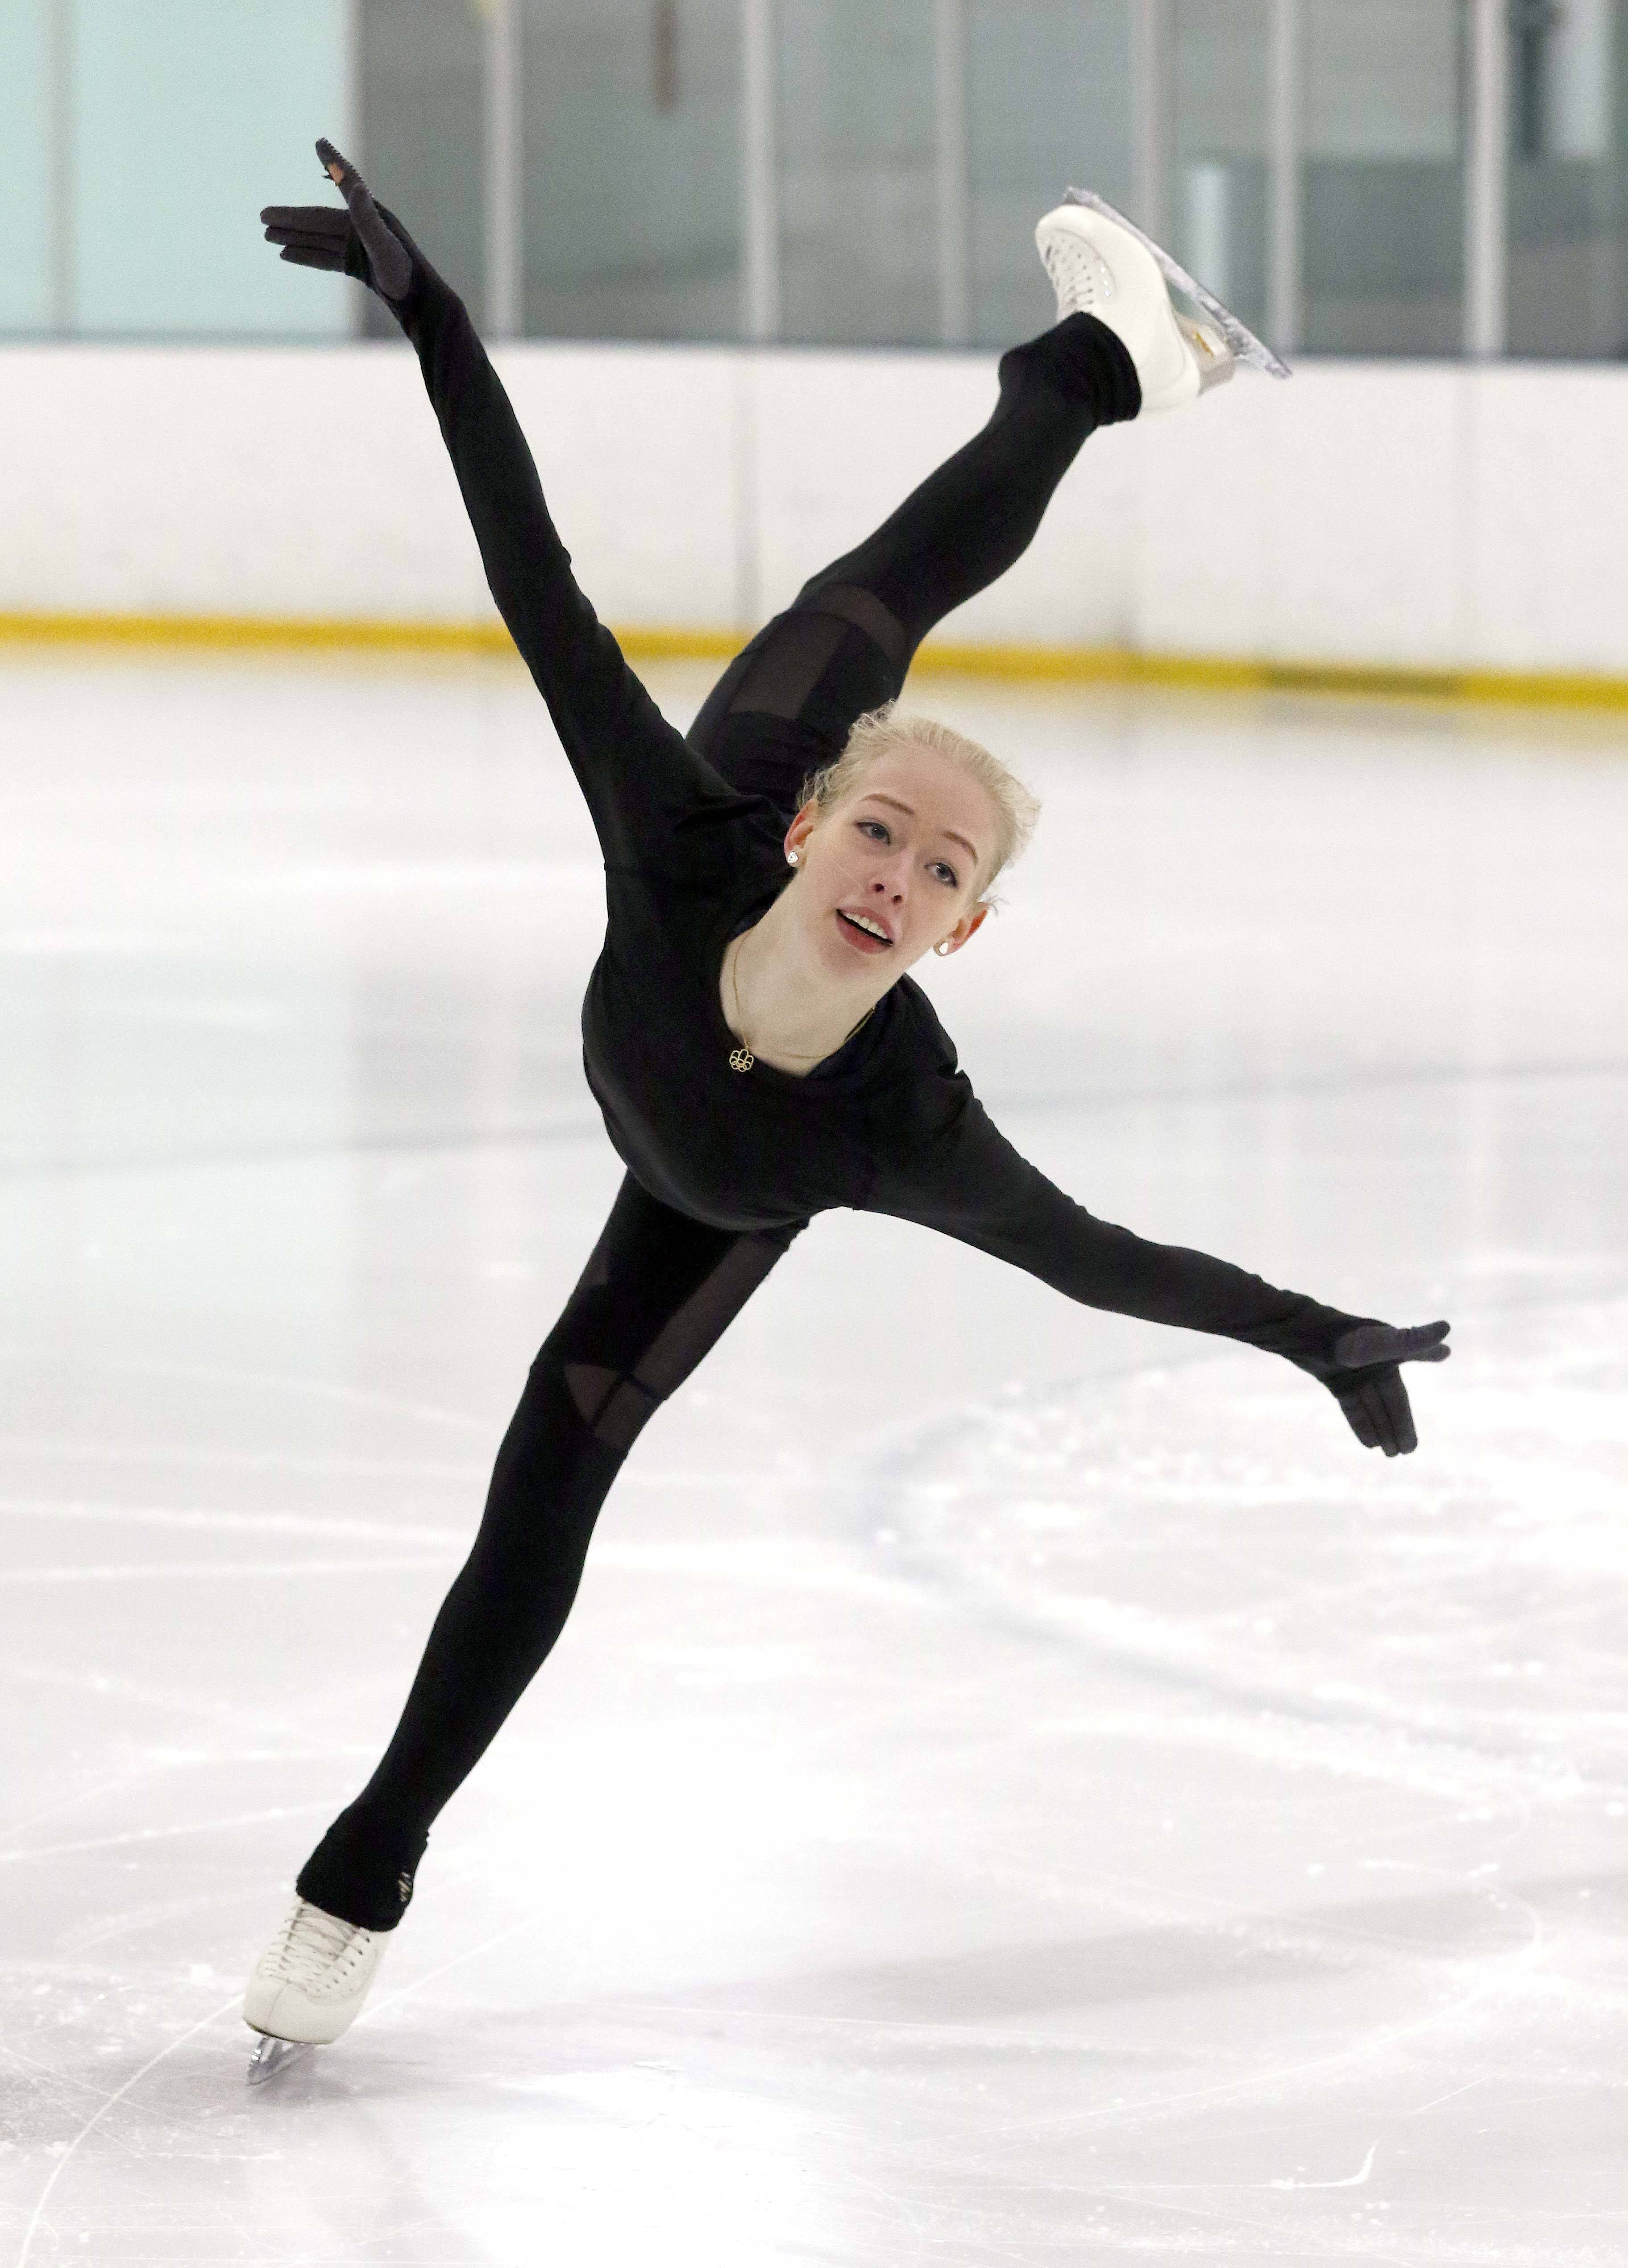 "Figure skater Bradie Tennell of Carpentersville is training for the 2018 Winter Olympics at her home rink, Twin Rinks Ice Pavilion in Buffalo Grove. ""I just like being back here, where it's low-key,"" she said."